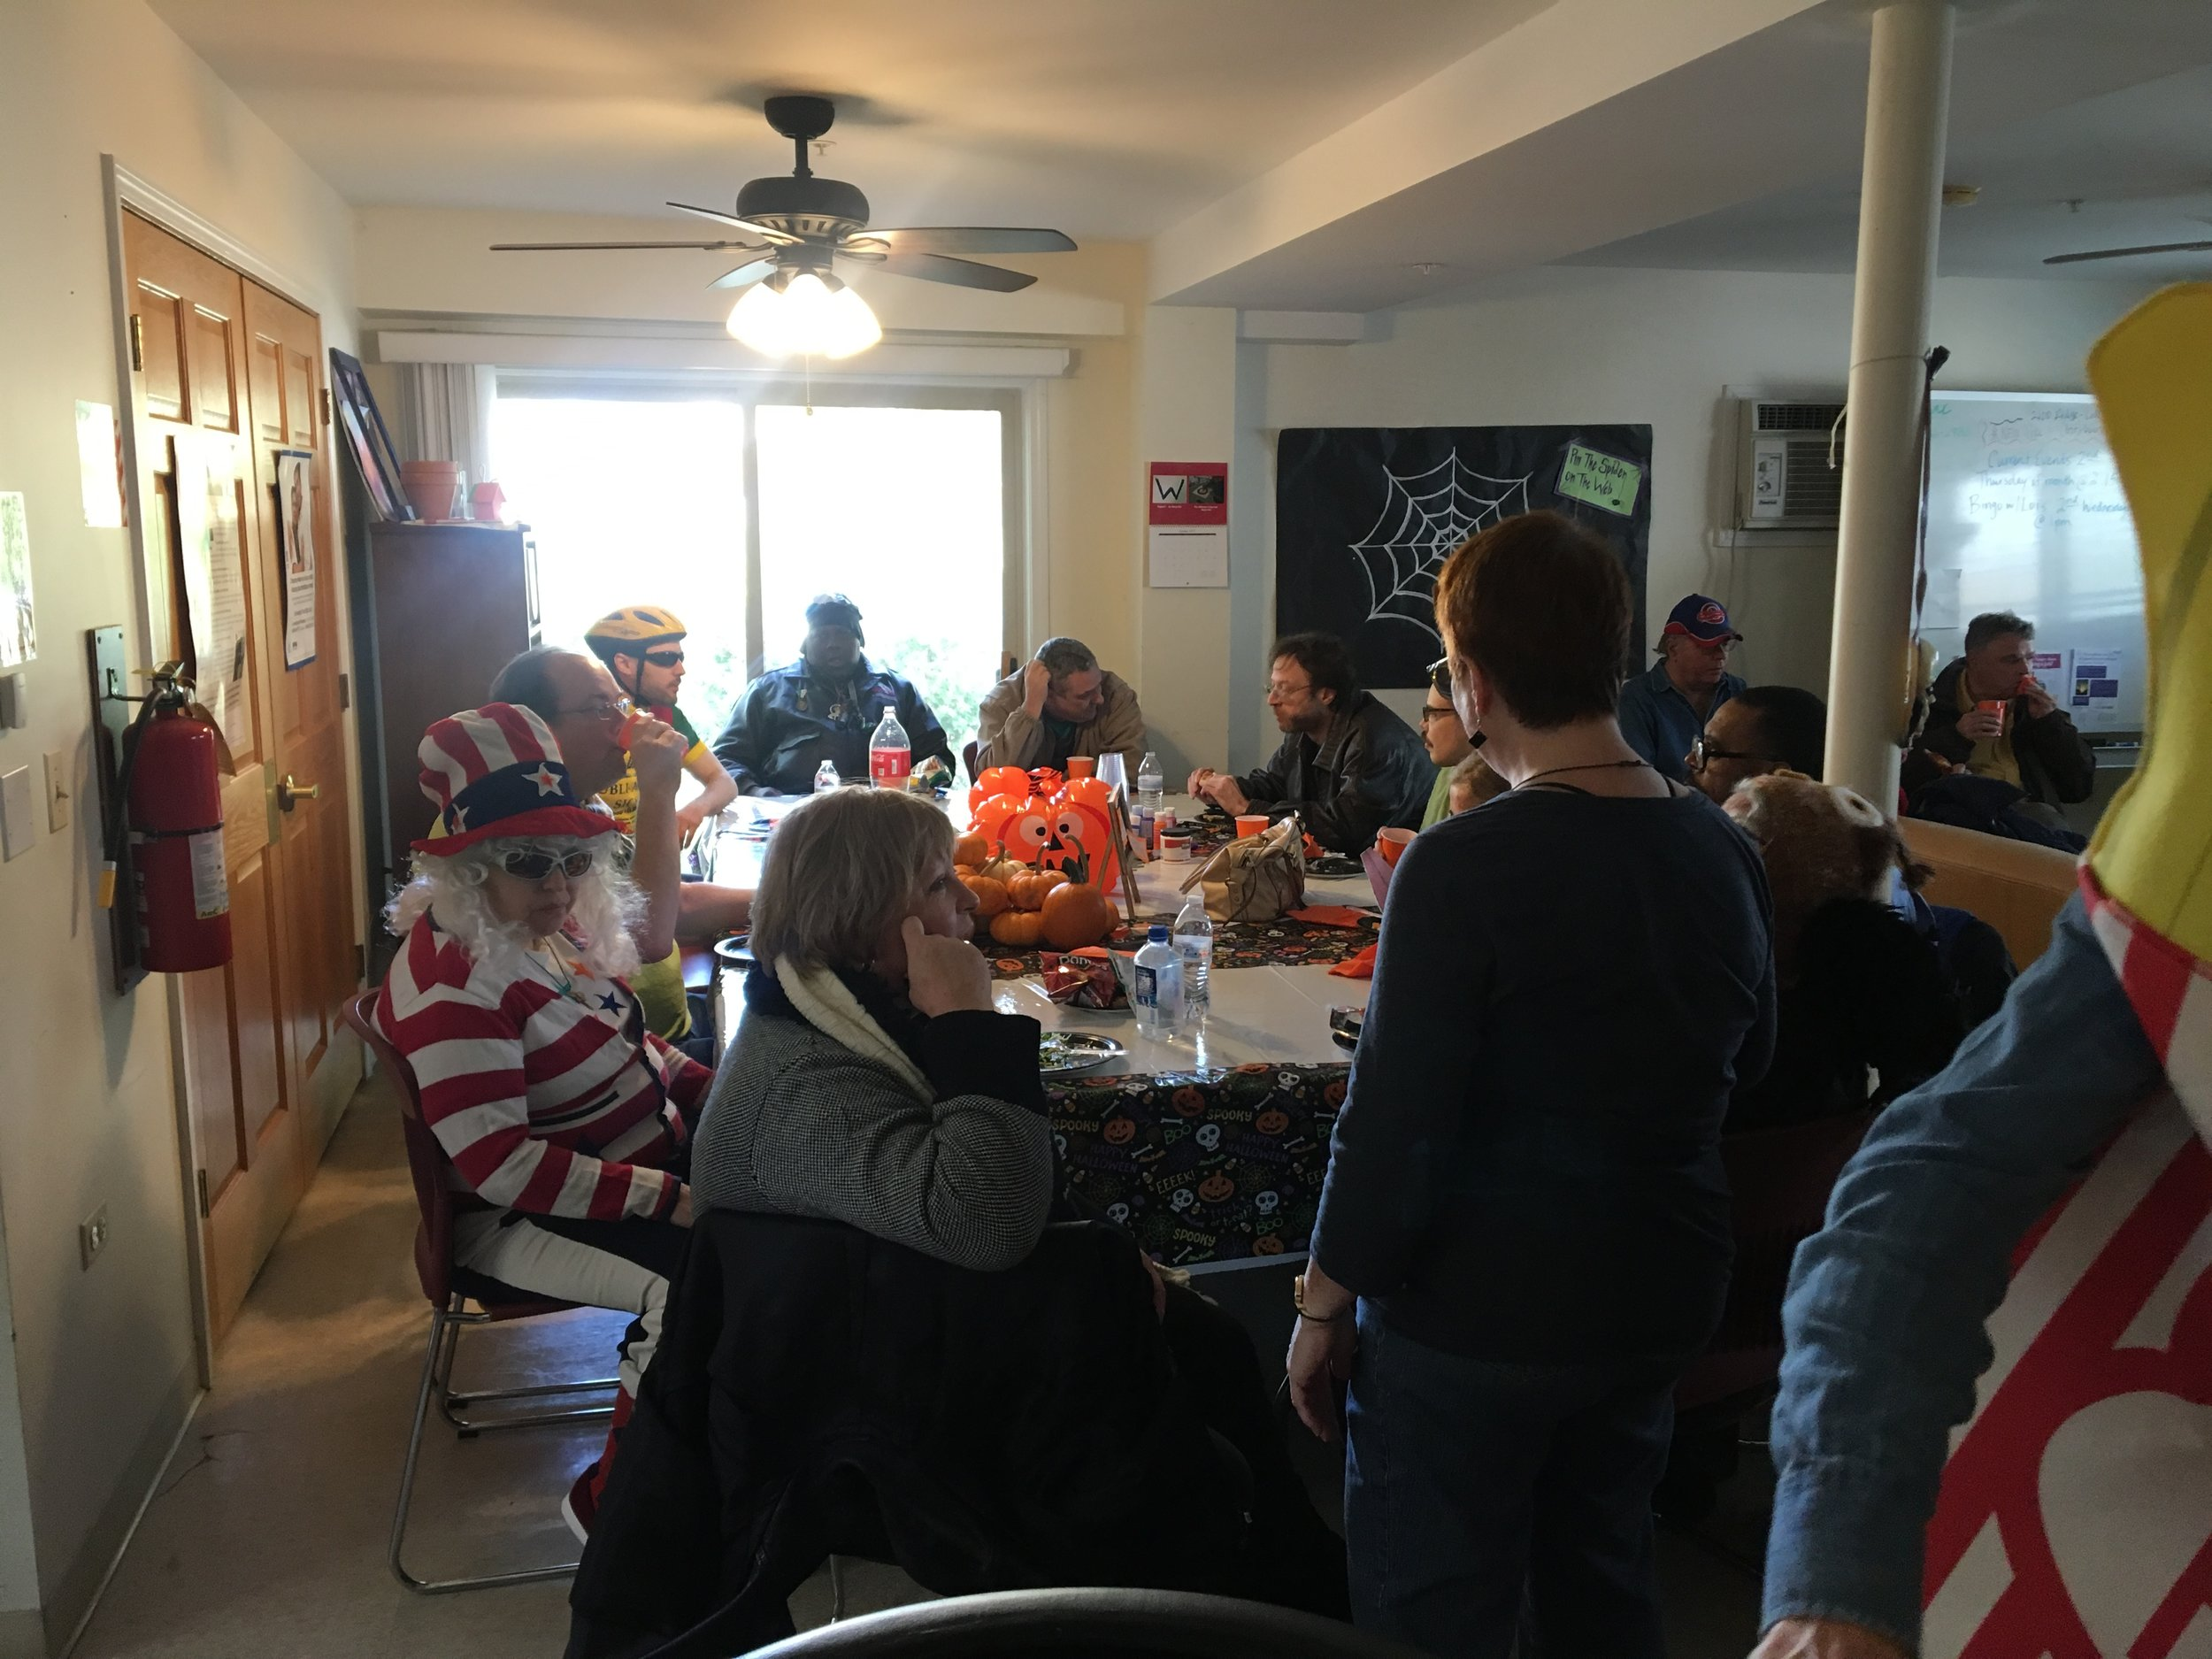 Party attendees enjoy the annual Halloween Party!